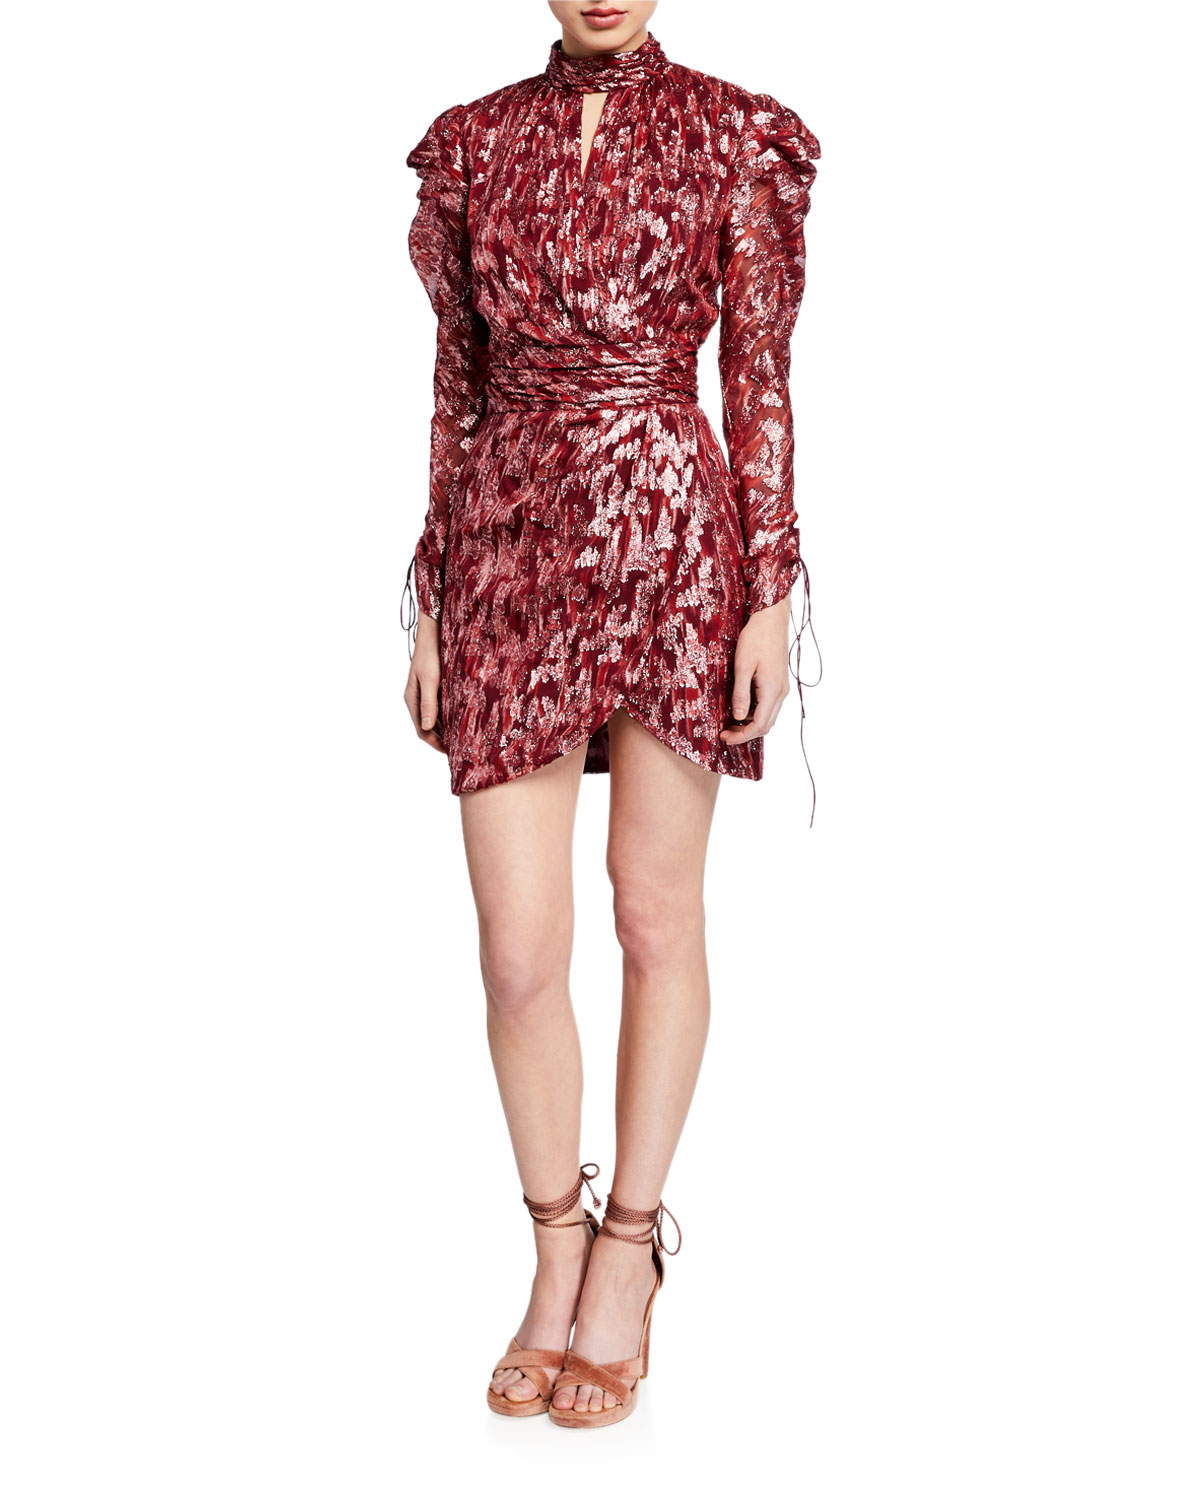 Jonathan Simkhai Dresses METALLIC VINE JACQUARD MOCK-NECK WRAP DRESS